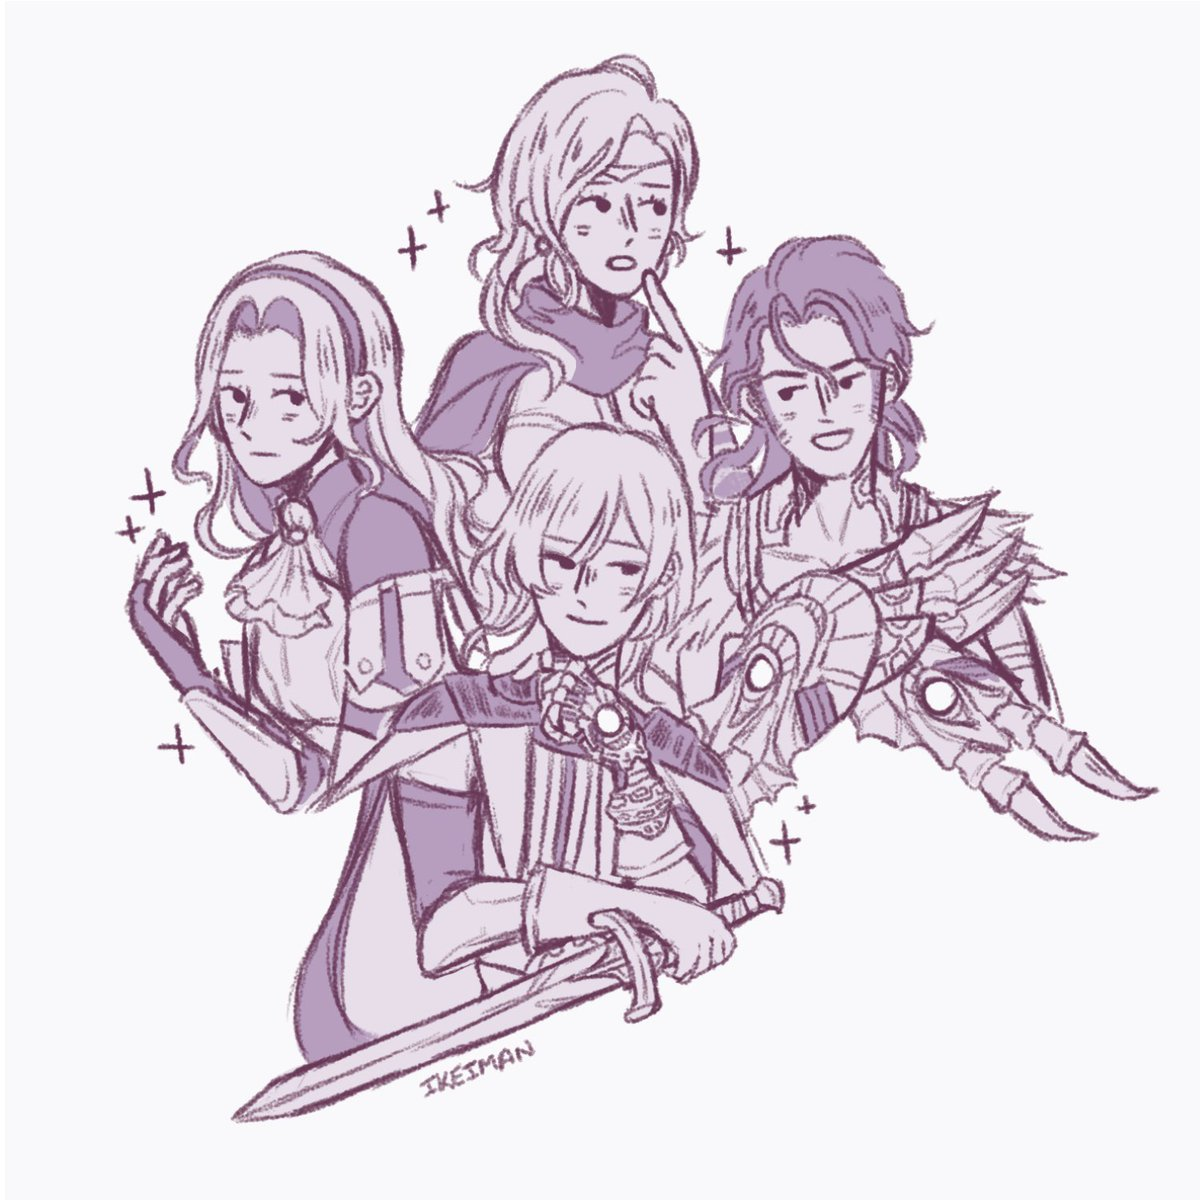 TADAAA- I'm planning on using this as a little bonus for my online store once I get than running d(^_^o) #fe3h #FireEmblemThreeHouses #fireemblem #digitalart #fanart #ashenwolves